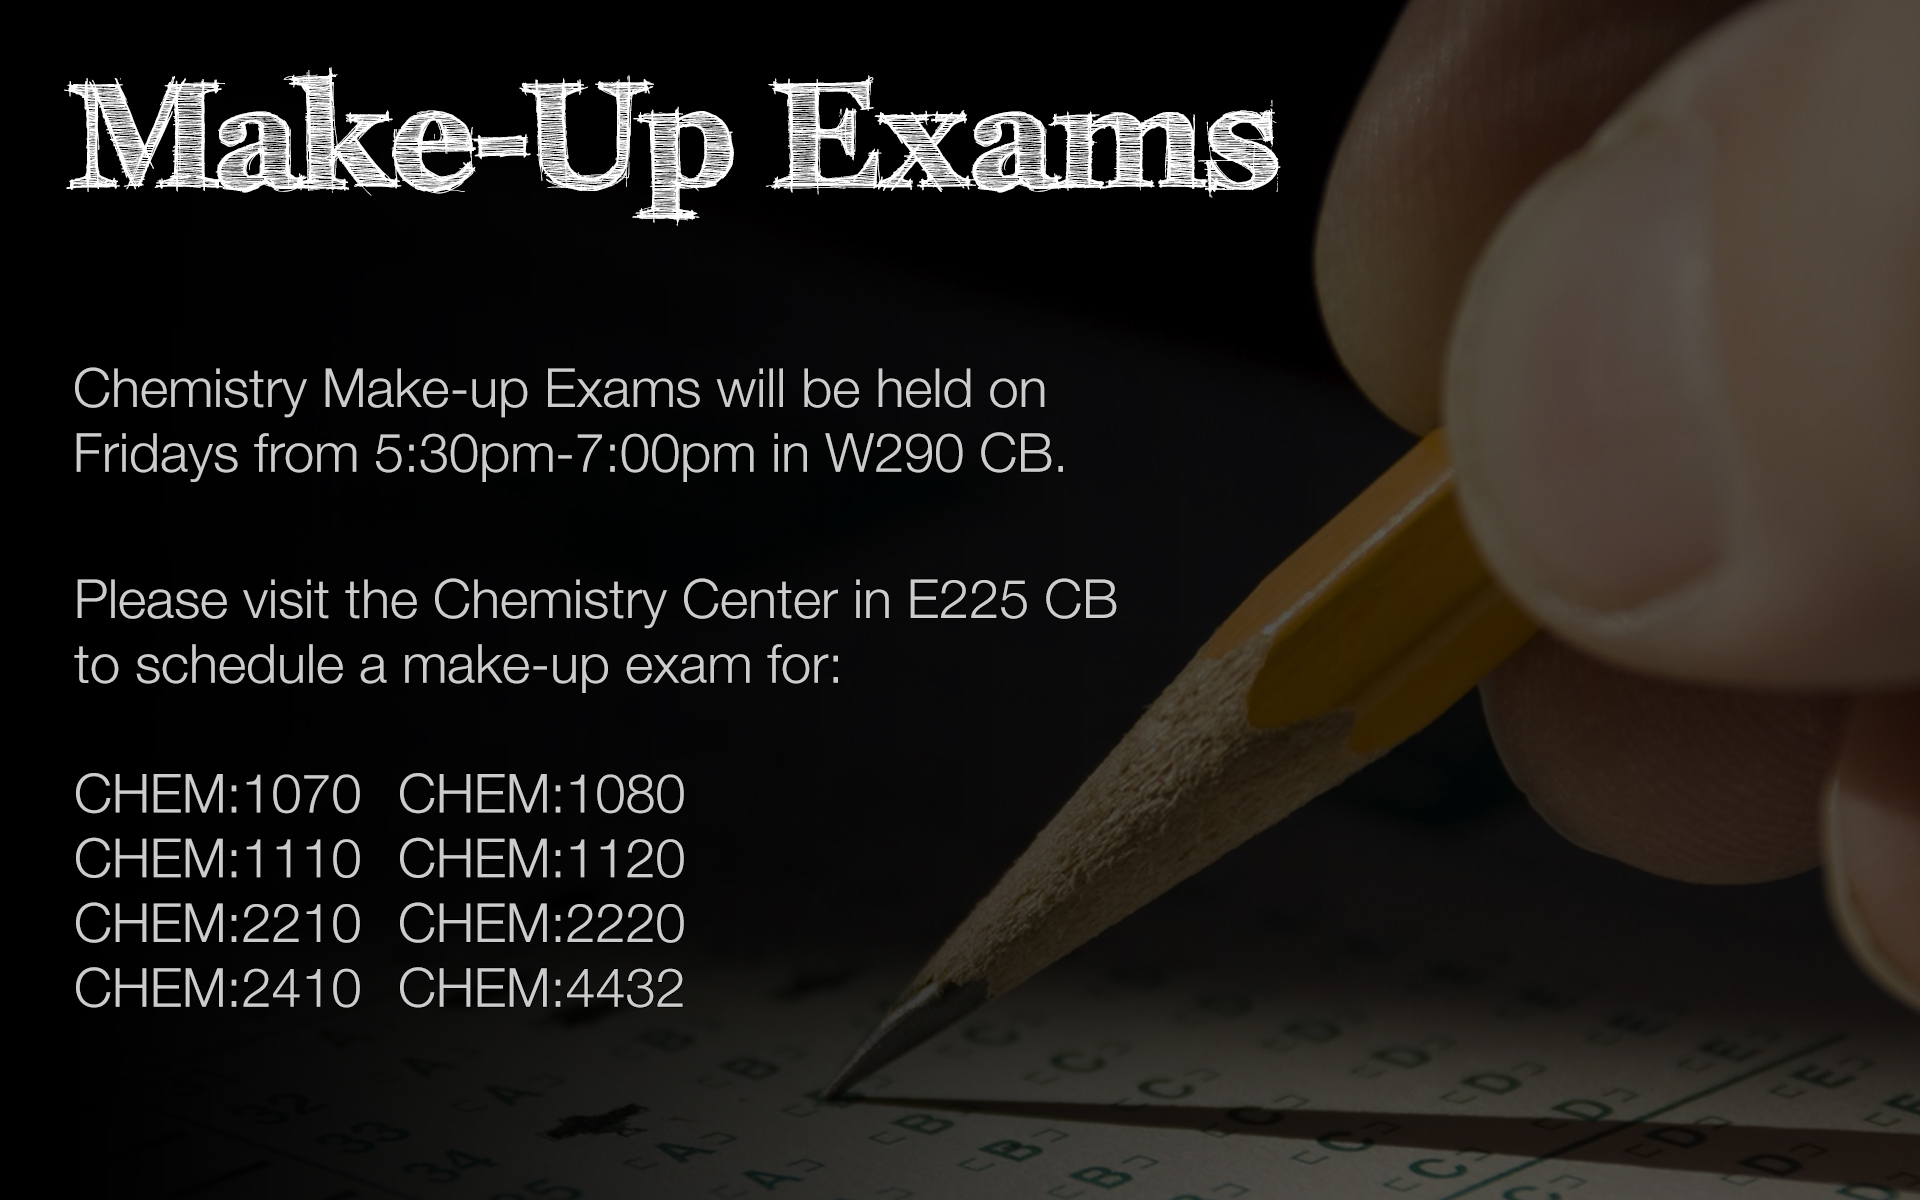 Chemistry Make-Up Exams will be held on Fridays from 5:30pm - 7:00pm in W290 CB.